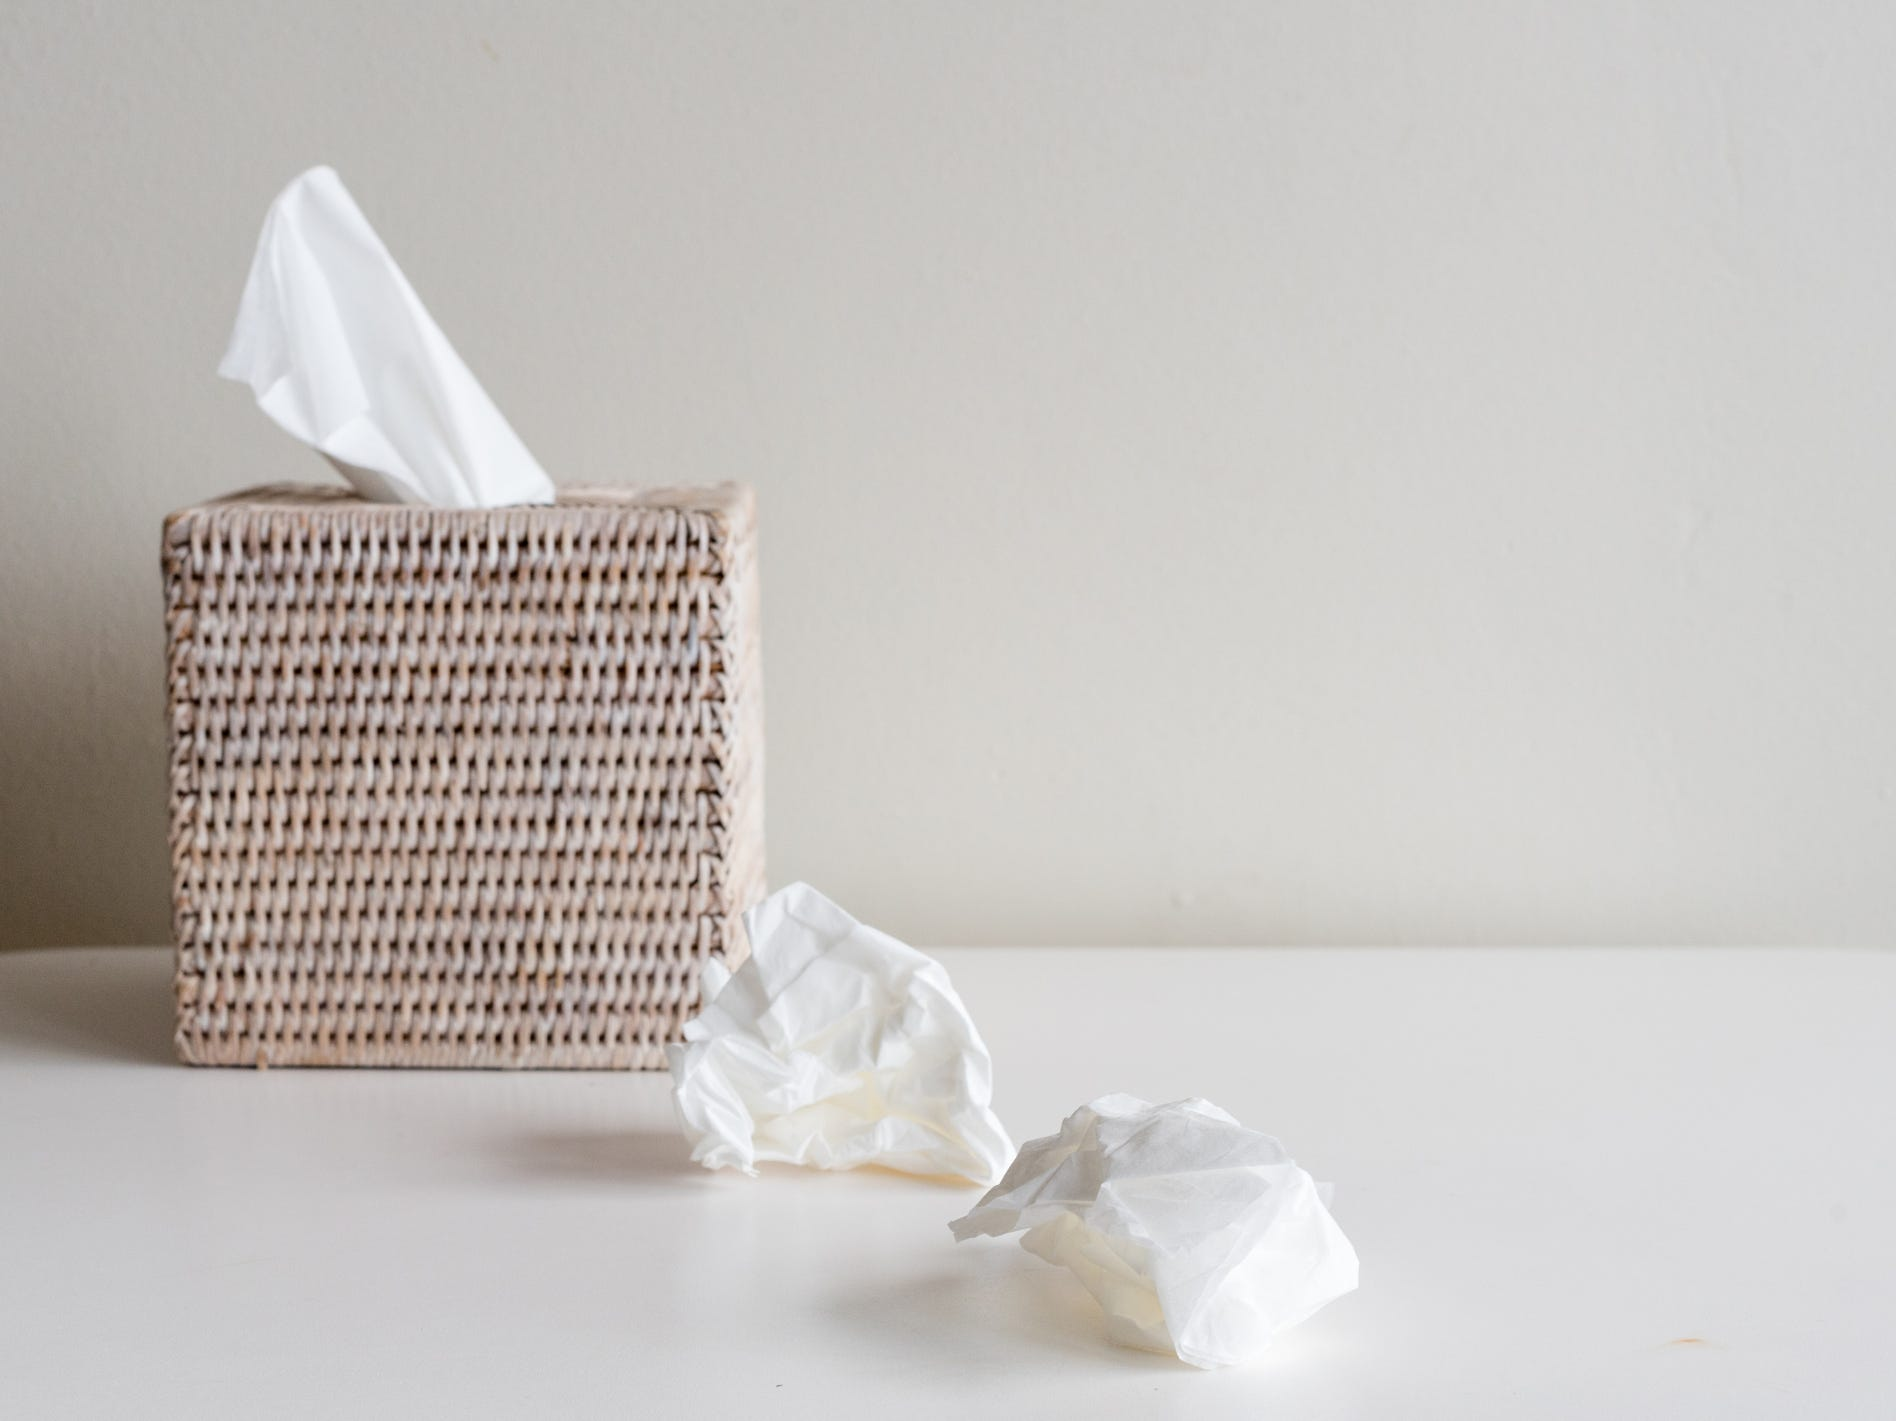 Arizona flu cases down from last year, above five-year average